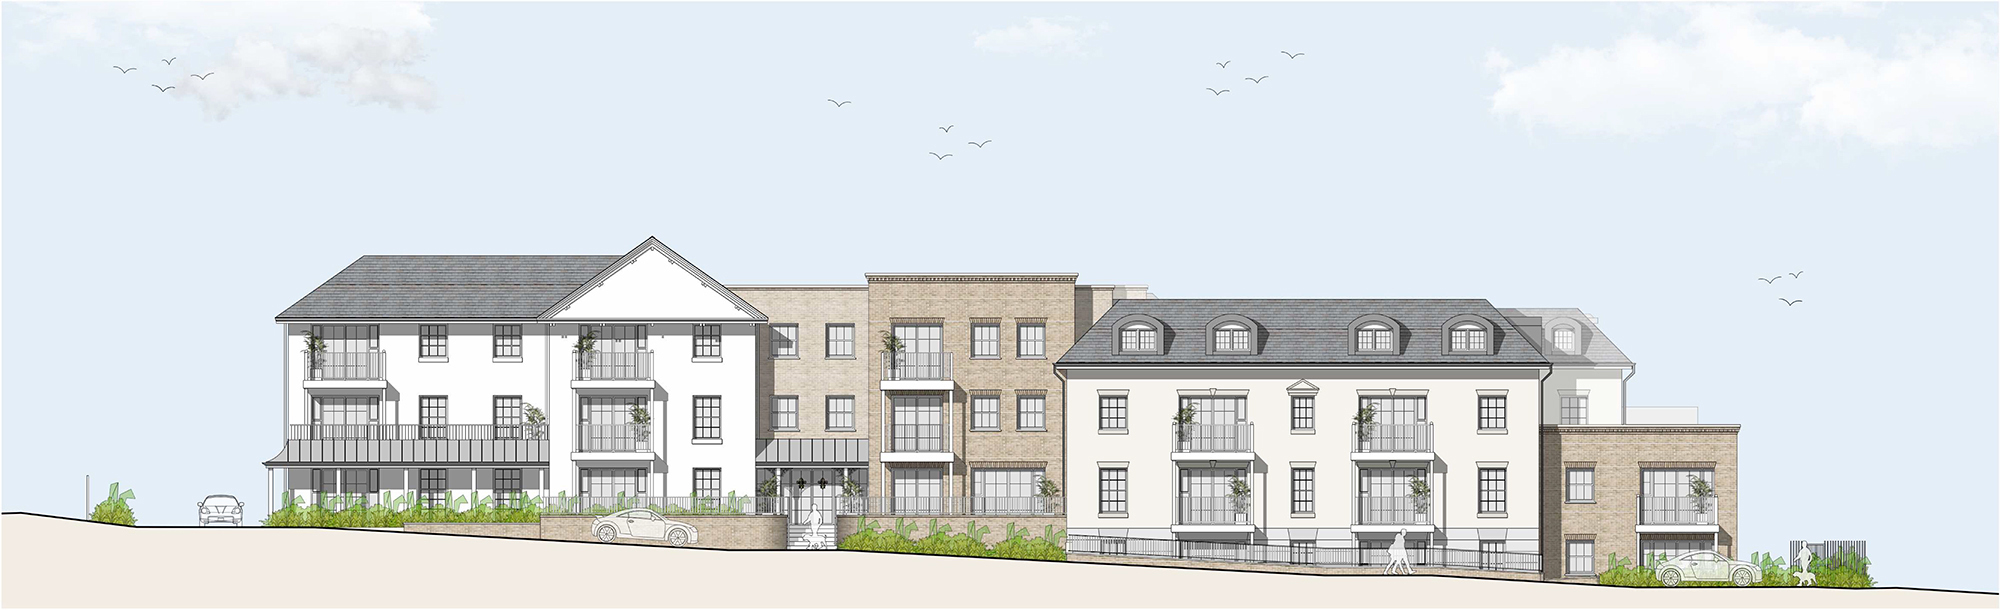 1913-stanford-hill-planning-application-2-2020.04.29-front-elevation